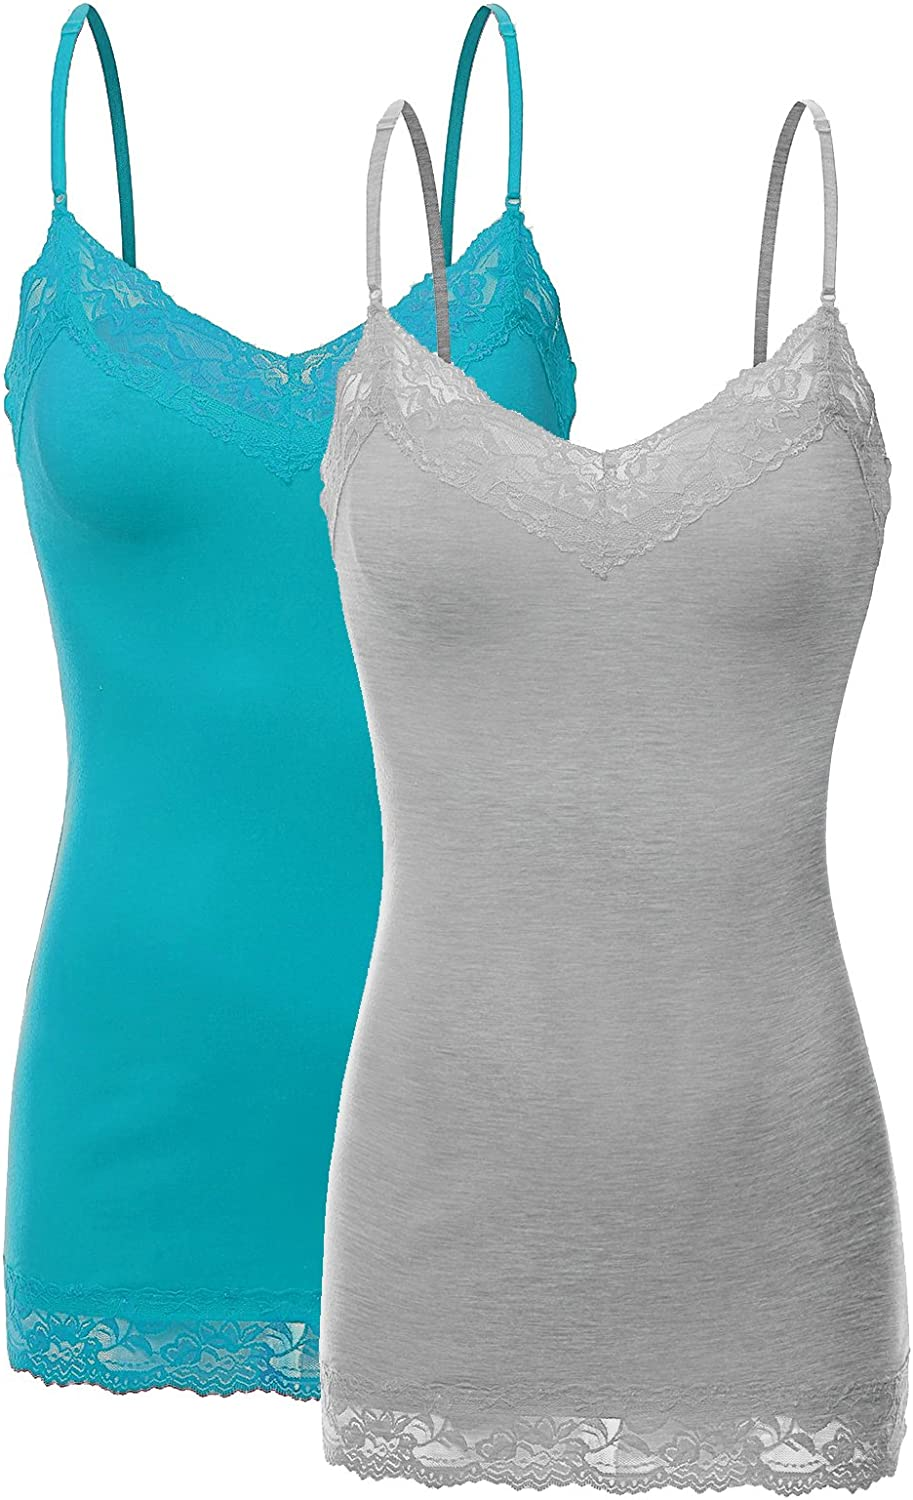 XT1004L Pack Ladies Adjustable Spaghetti Strap Lace Trim Cami Tank Top 2Pack-HE.Gry/Teal XL